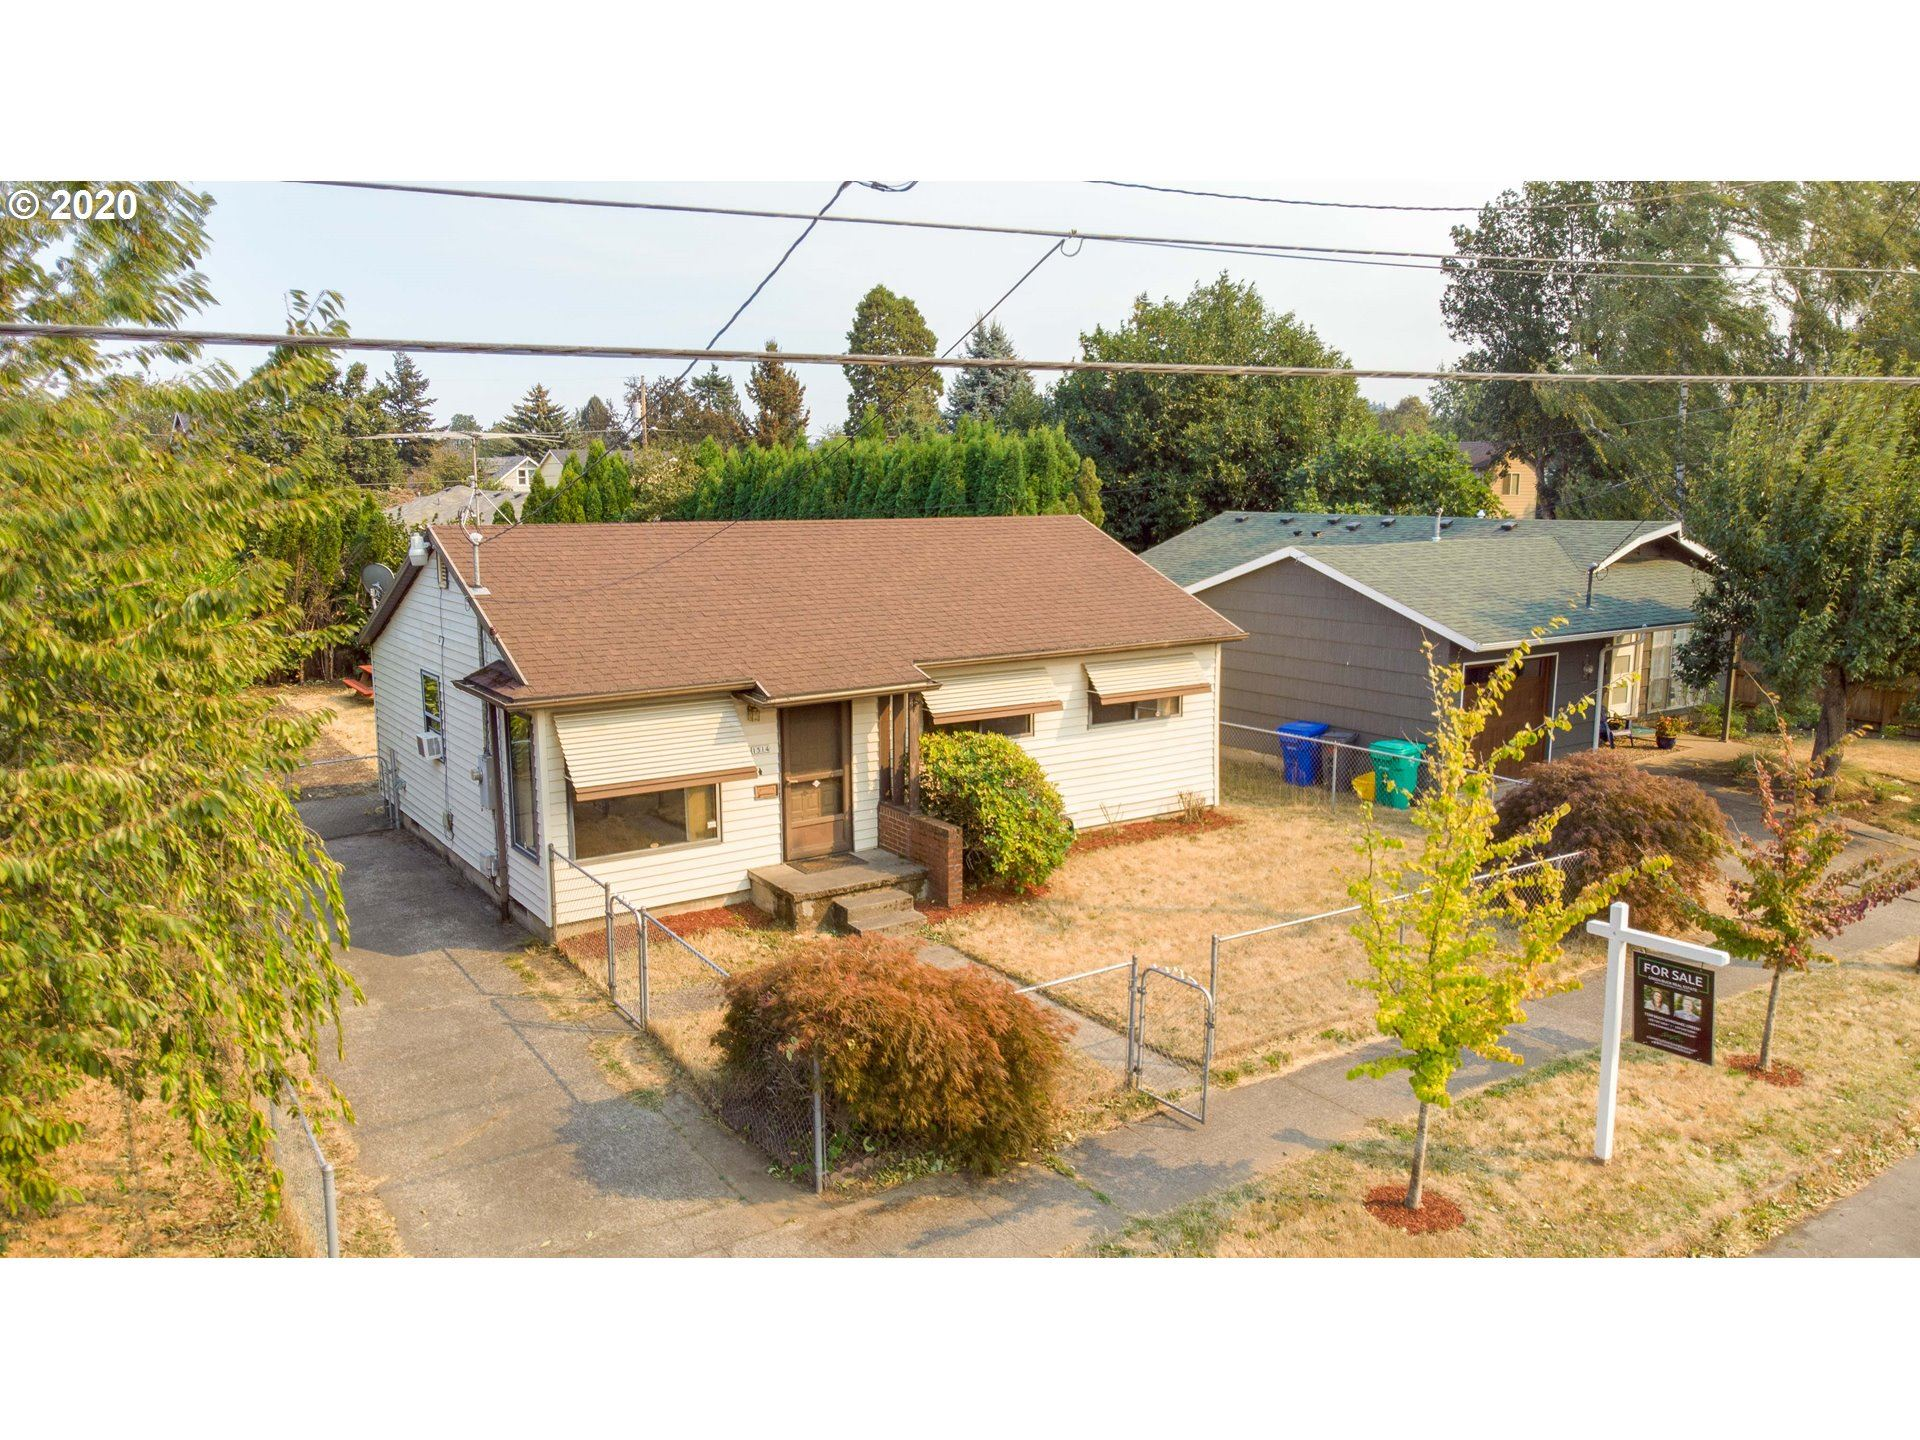 1514 SE 86TH AVE, Portland, OR 97216 - MLS#: 20604620